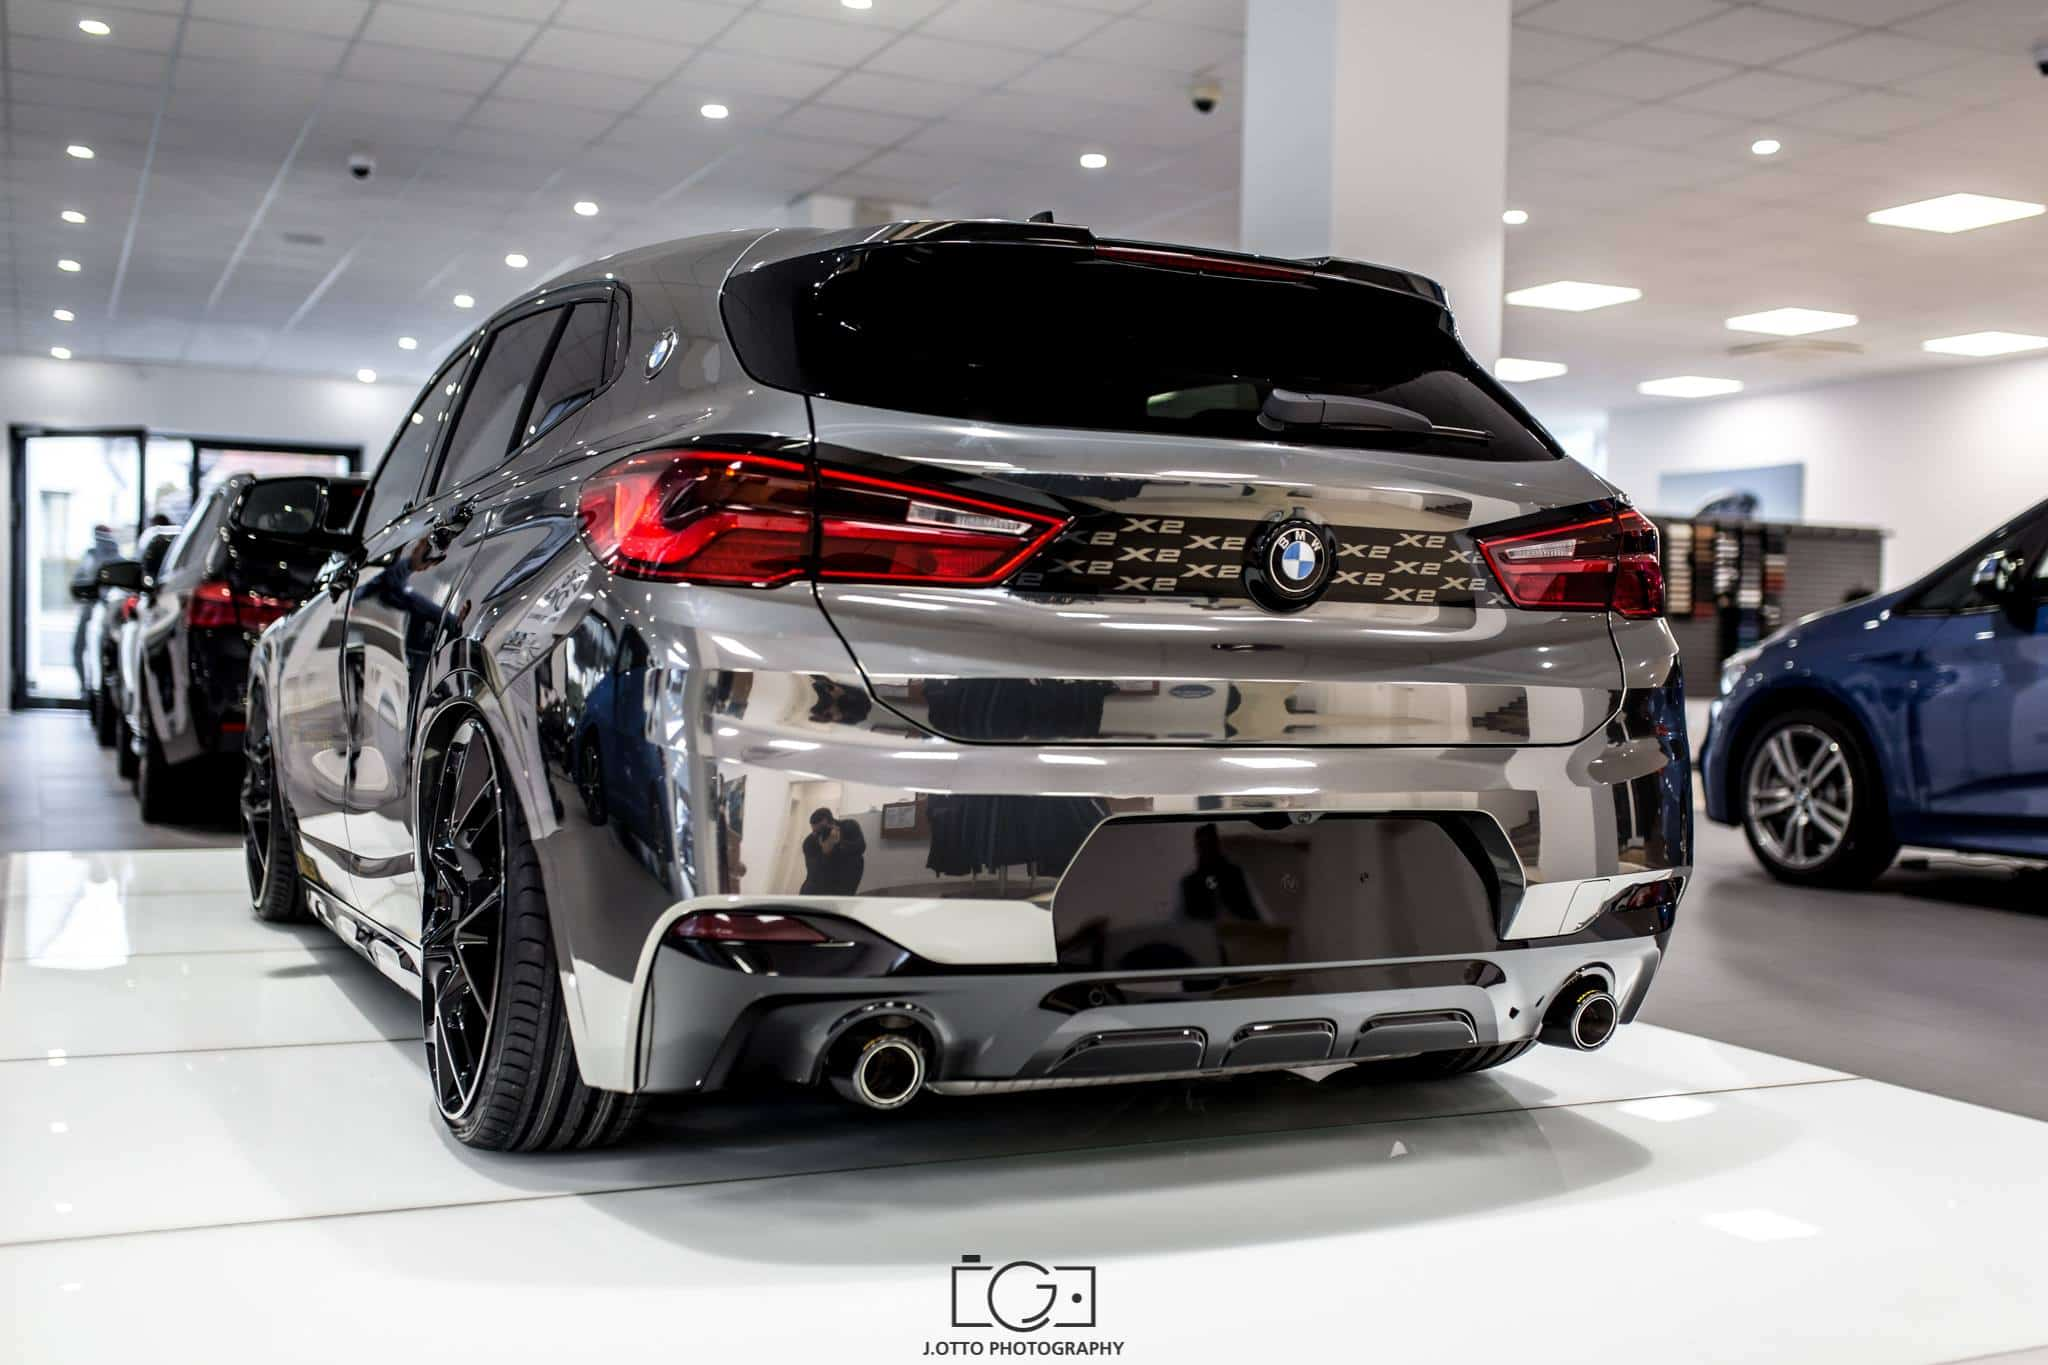 BMW X2 Tuning by Maxklusiv Photo: J. Otto Photography